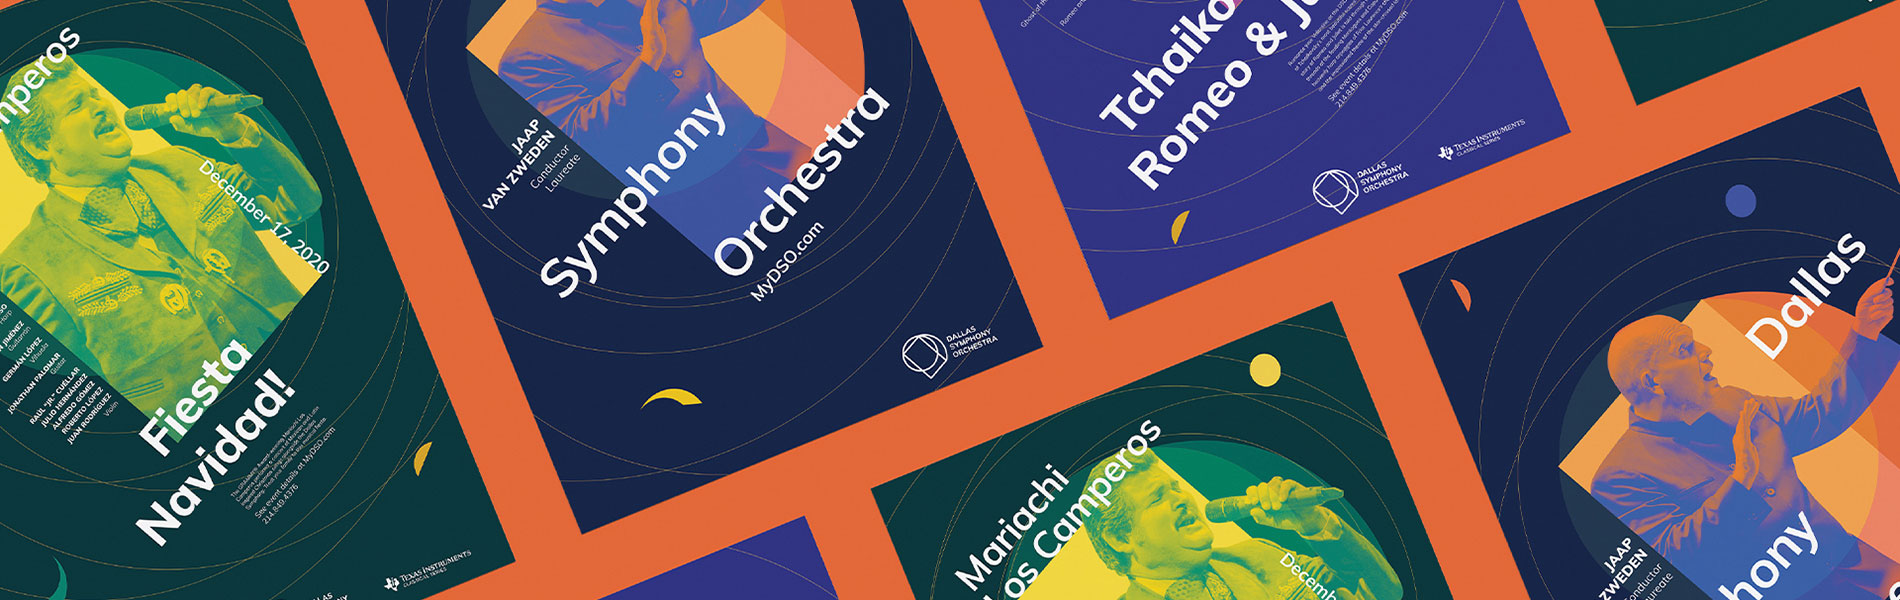 Graphic designs of programs for the Dallas Symphony by Meah Lin